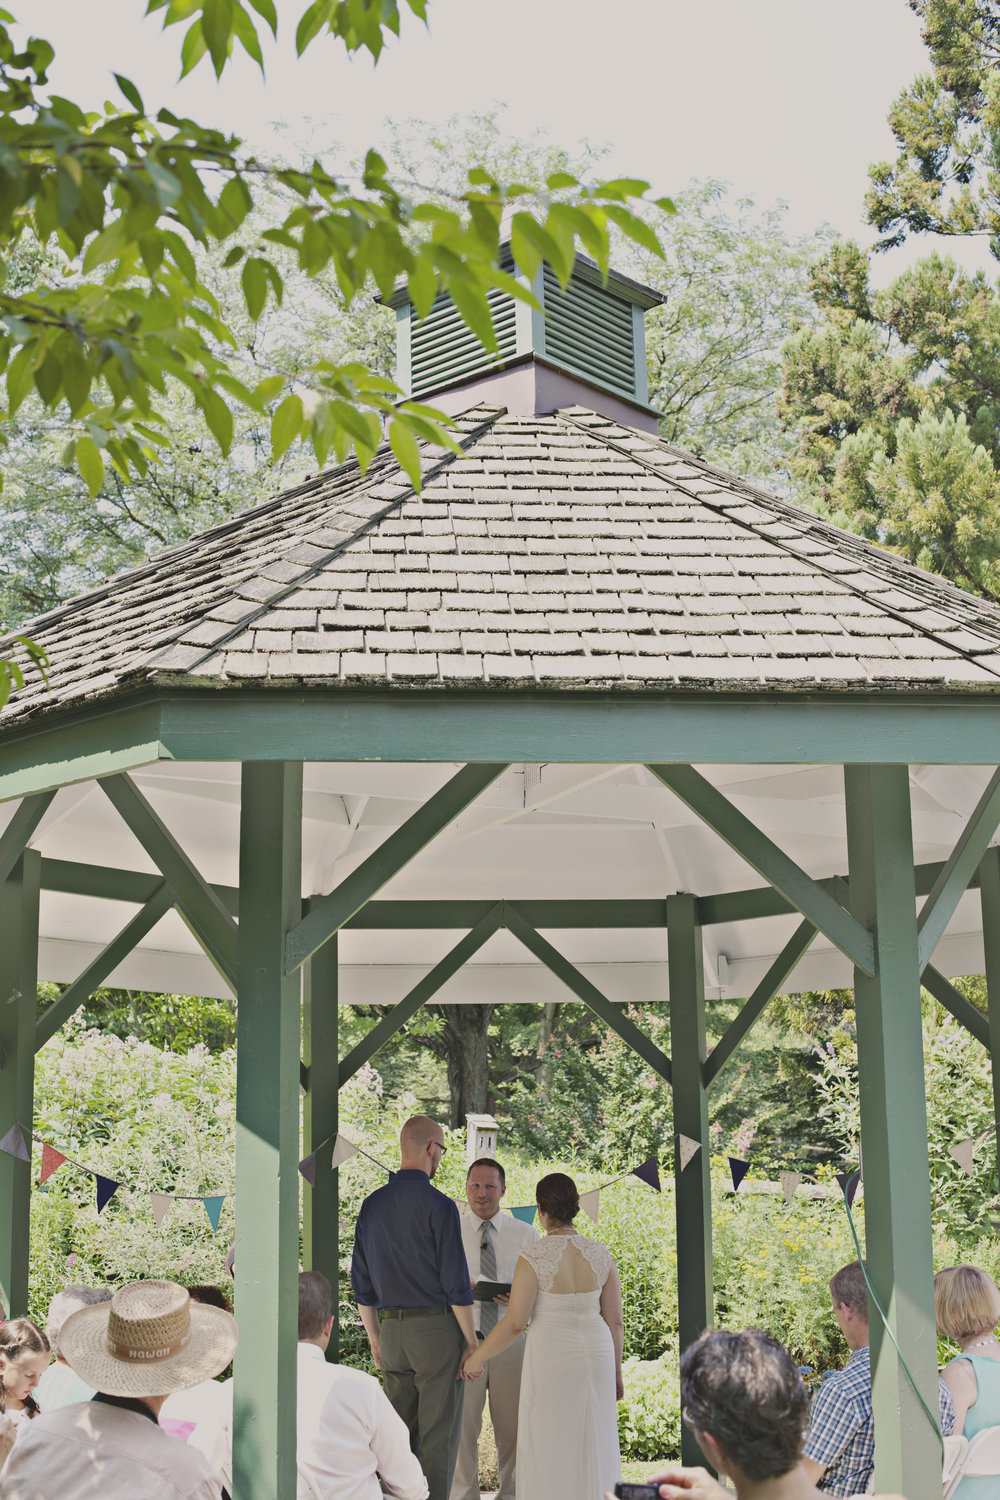 Get married at a public park- these are usually free or low cost and make lovely outdoor venues!